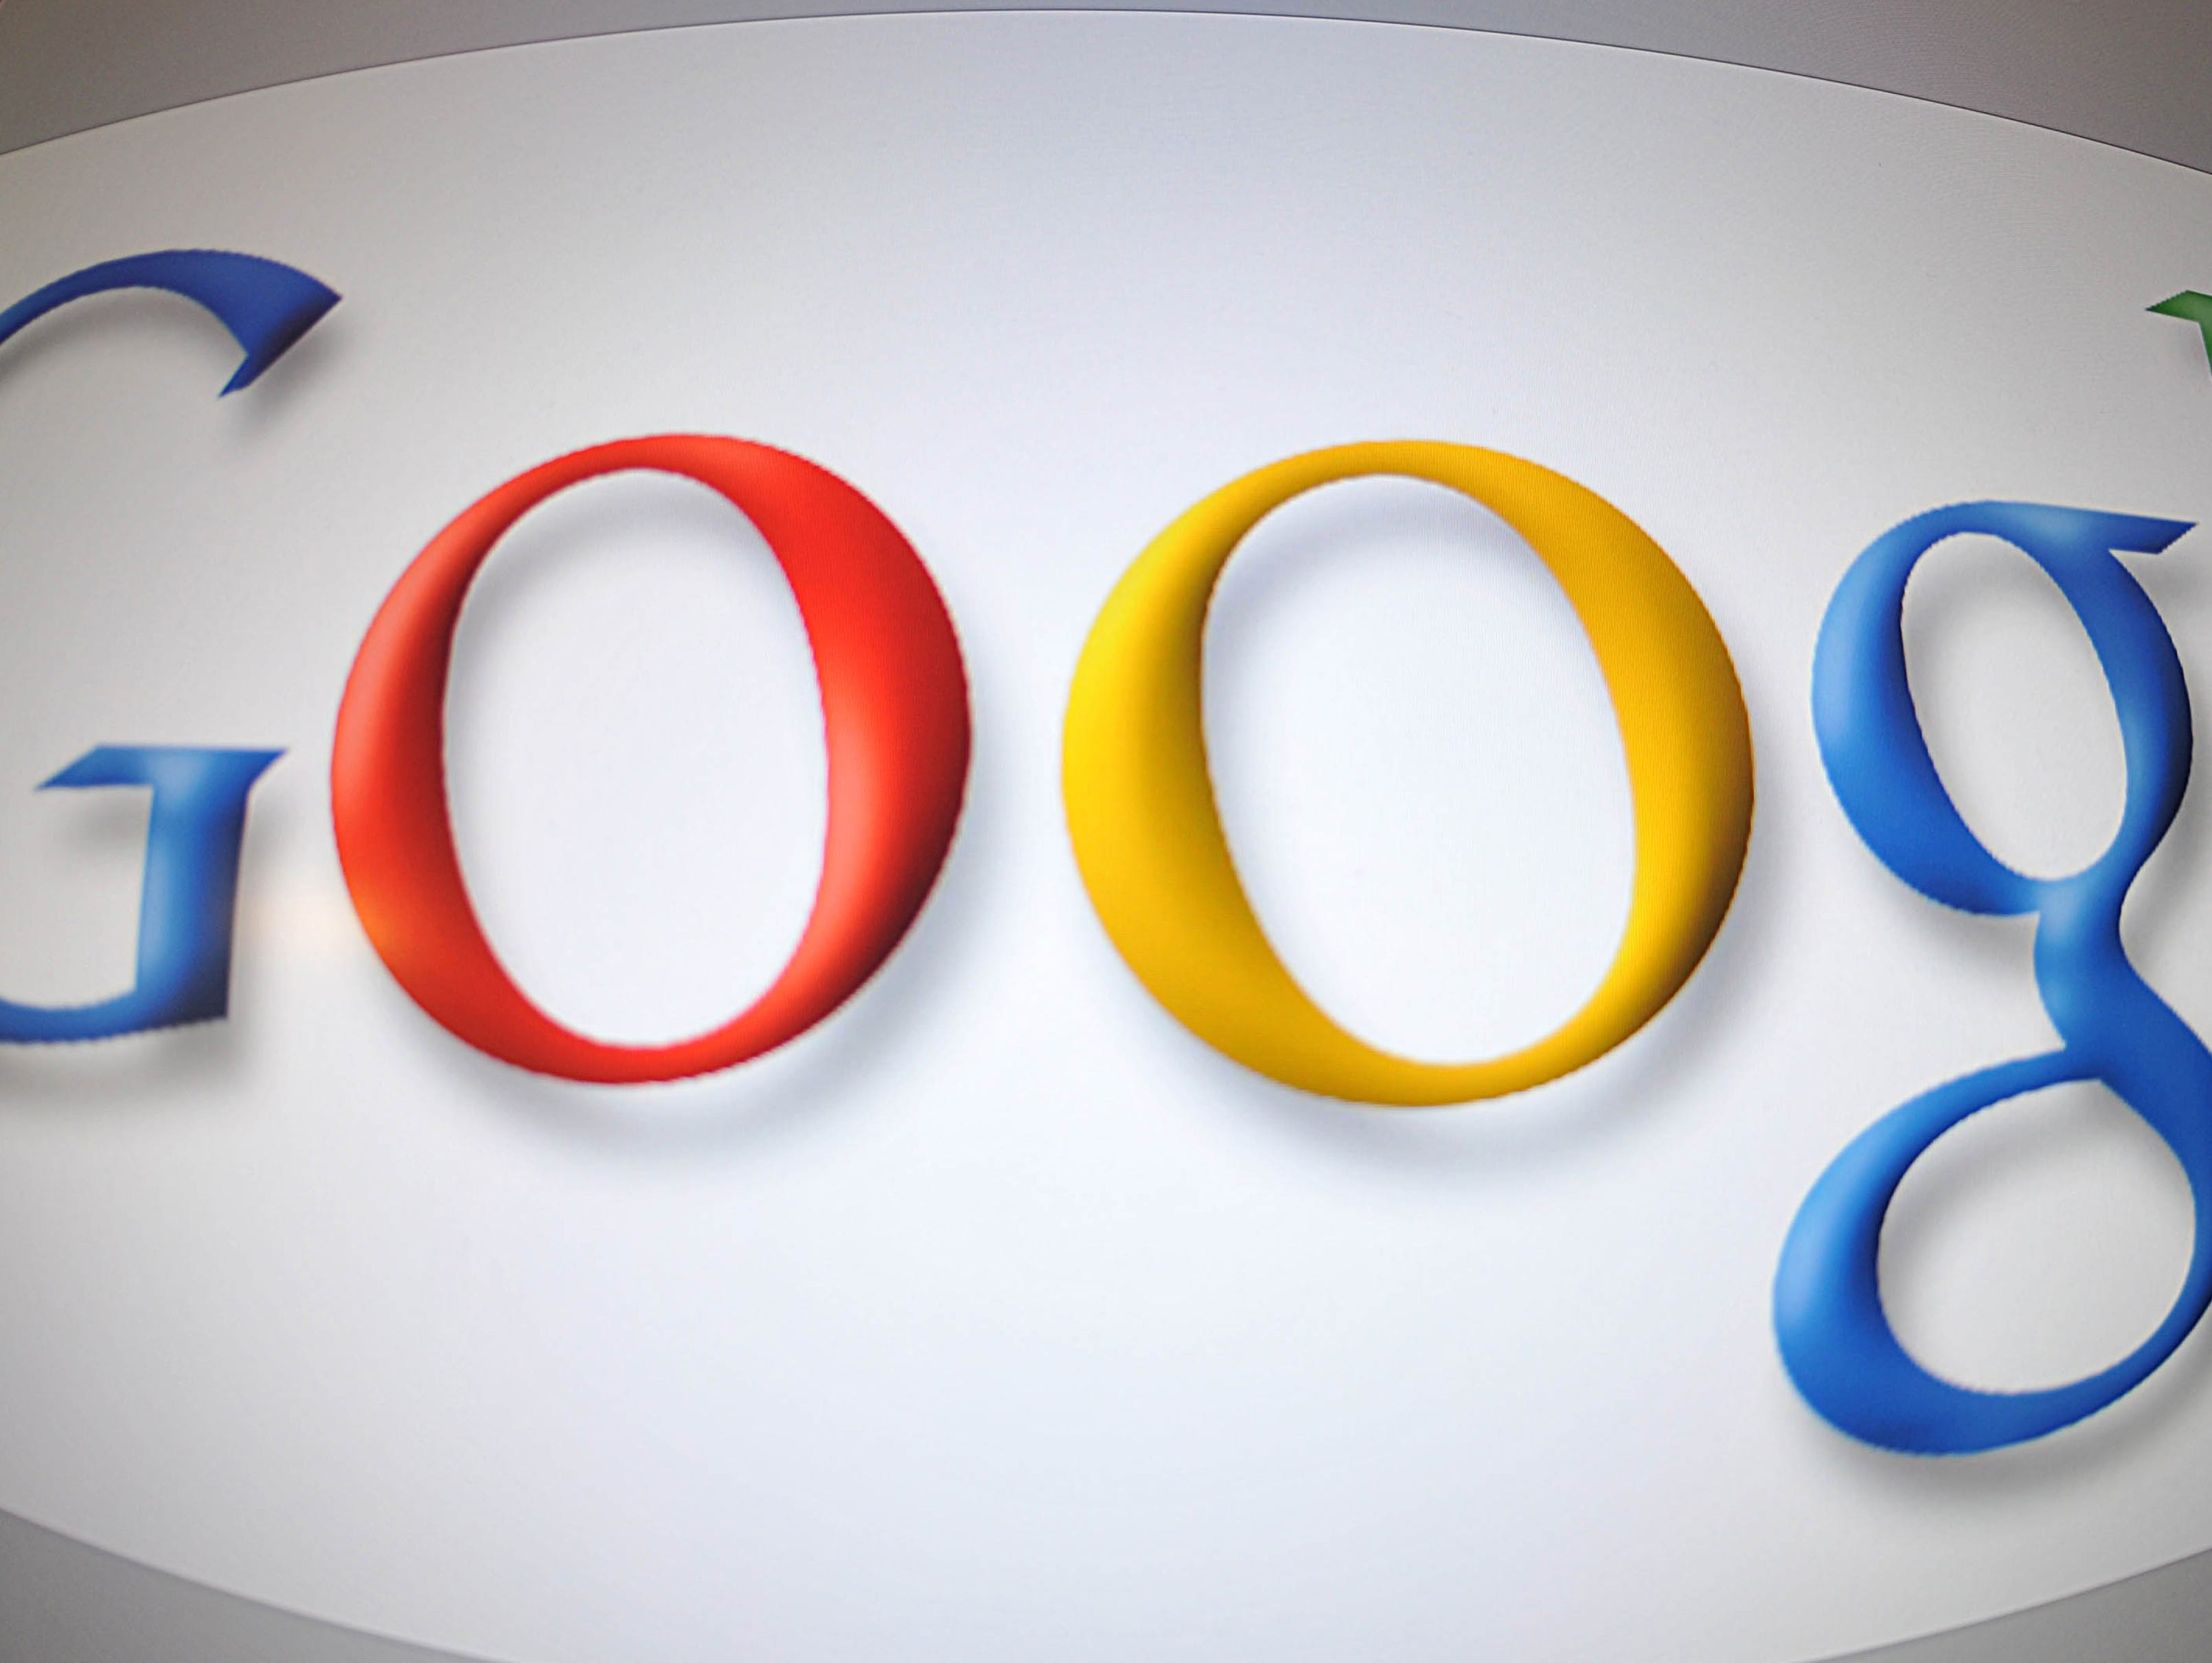 Google is adding its portfolio of tech patents from its 2011 acquisition of Motorola Mobility to a global wireless patent group.